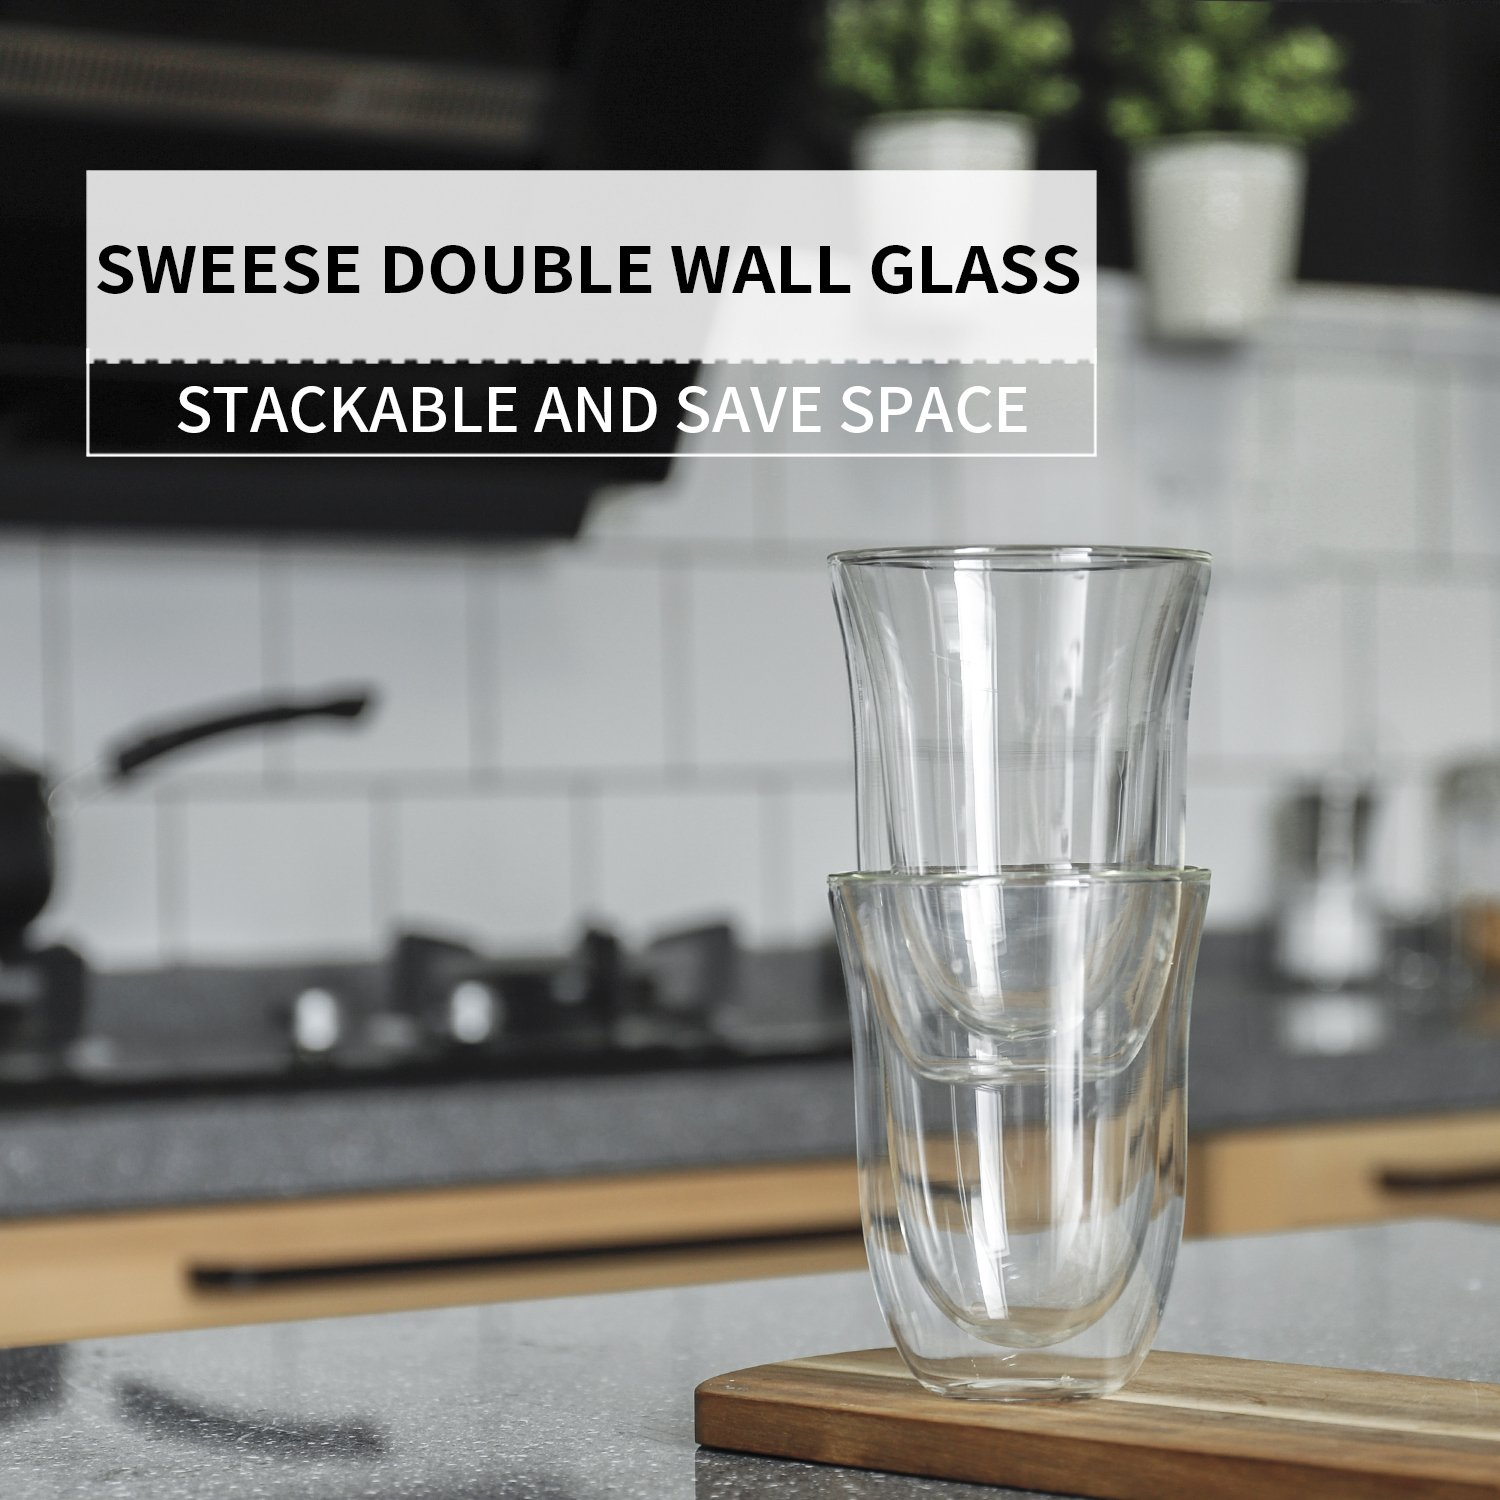 Sweese 4606 Glass Coffee Mugs - 8 Ounces, Double Wall Insulated Borosilicate Glasses , Espresso Cups Suitable for Cappuccino, Latte, Cream, Tea, Kinds of Beverage, Set of 2 by Sweese (Image #2)